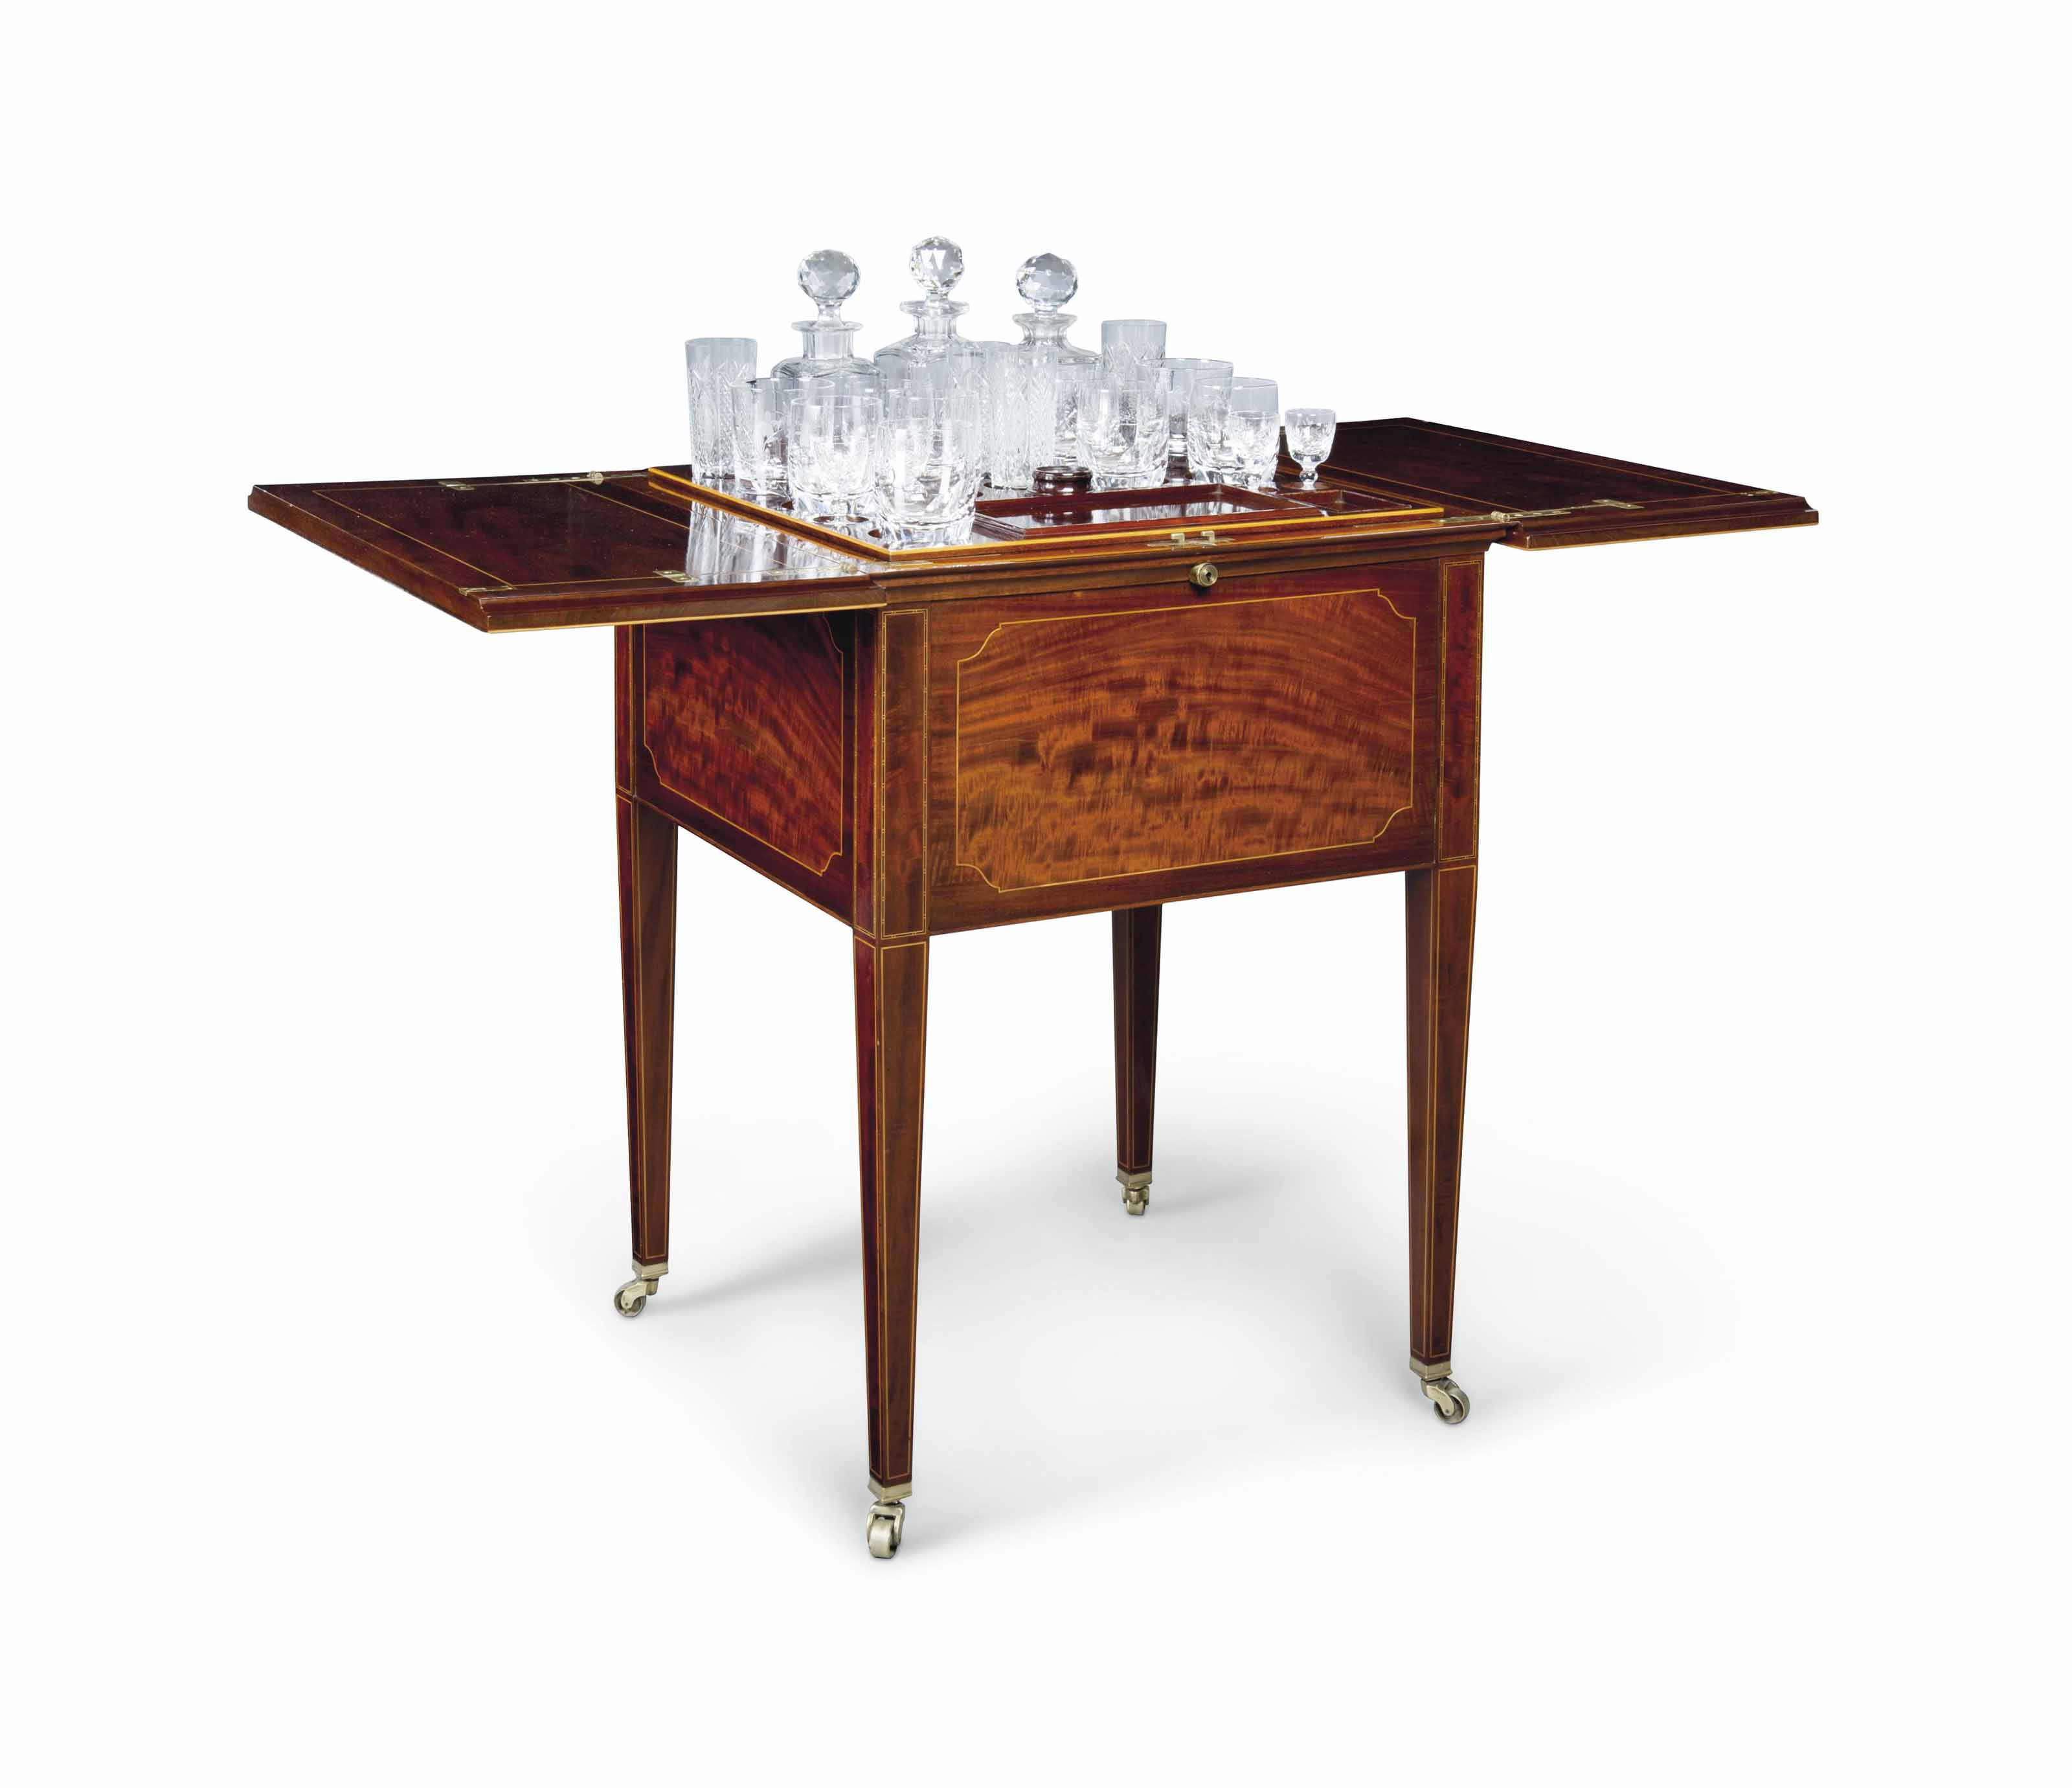 AN EDWARDIAN FIGURED MAHOGANY AND CHEQUER-STRUNG DRINKS SERVING CABINET